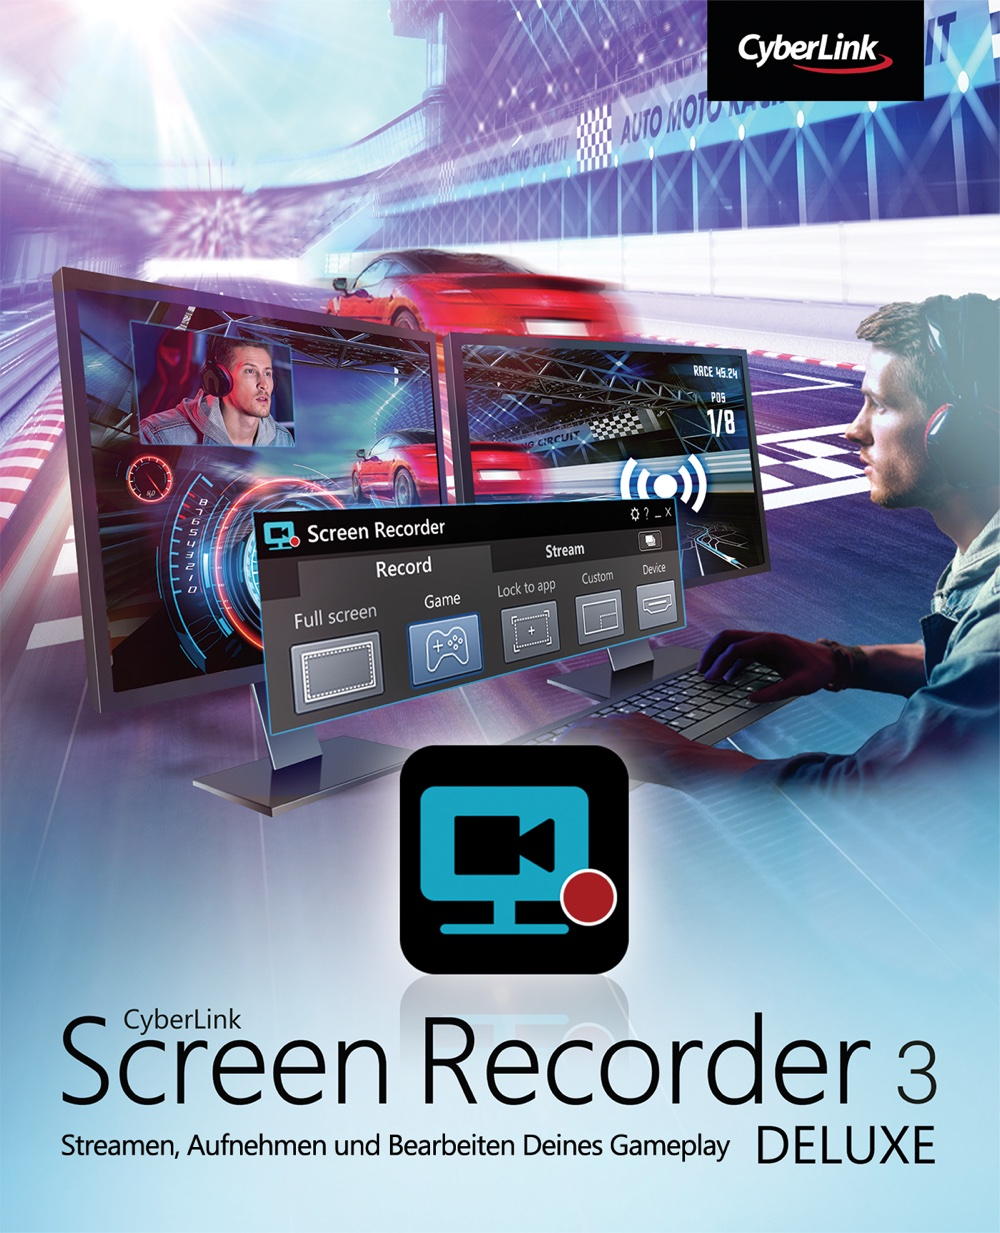 CyberLink Screen Recorder 3 Deluxe [Download]